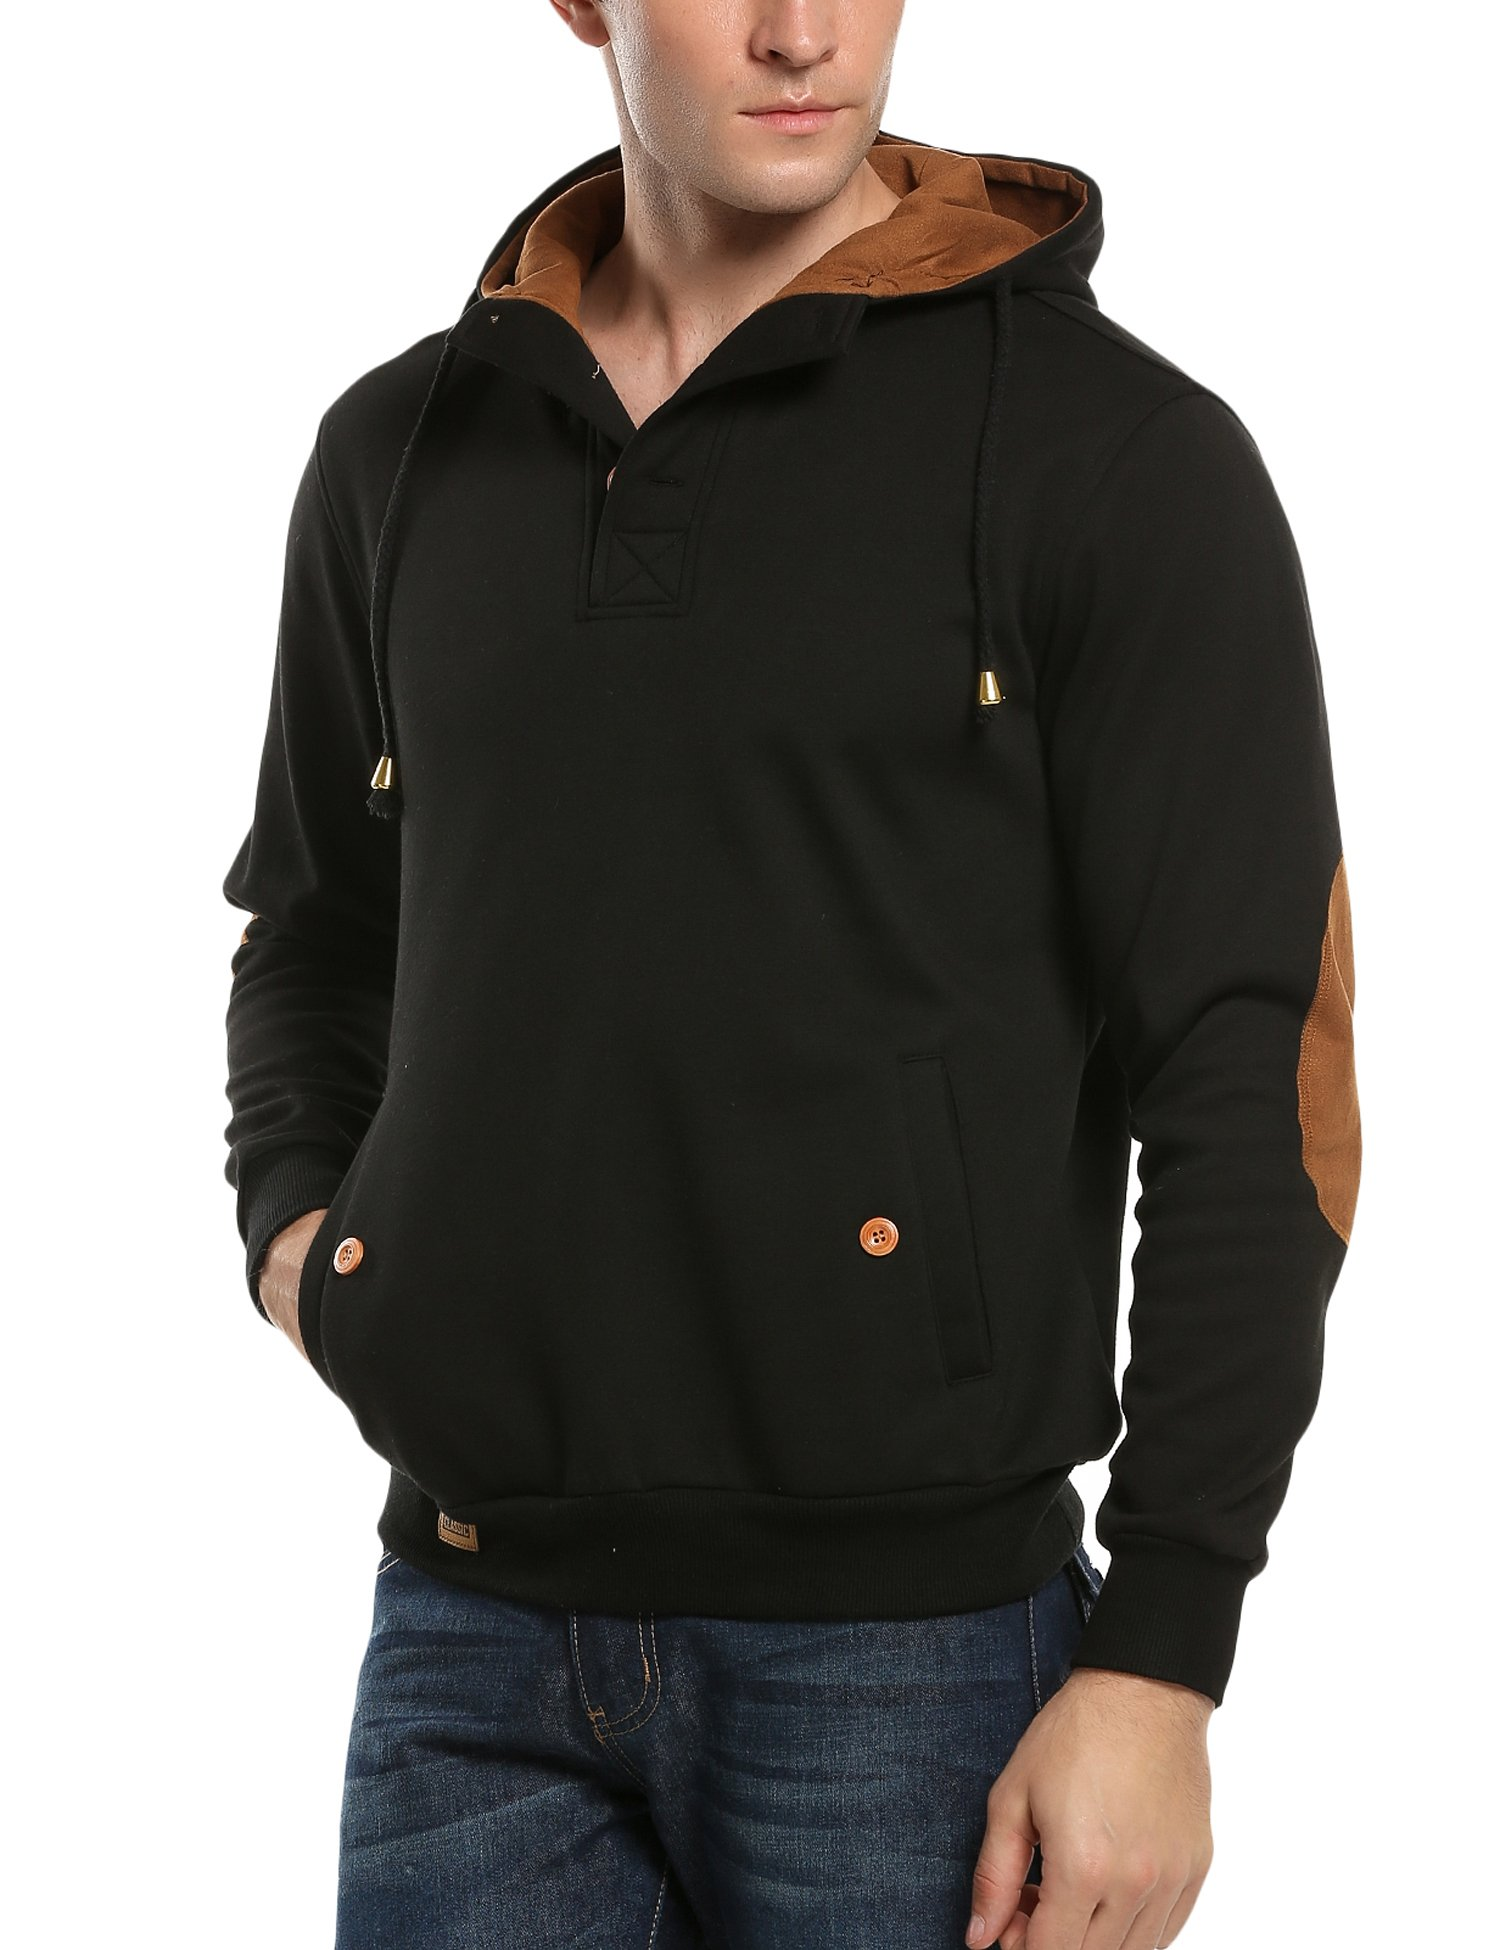 COOFANDY Men's Sherpa Lined Fleece Hoodie Sweatshirts Winter Pullover Long Sleeve Jacket with Pocket,Black,Large by COOFANDY